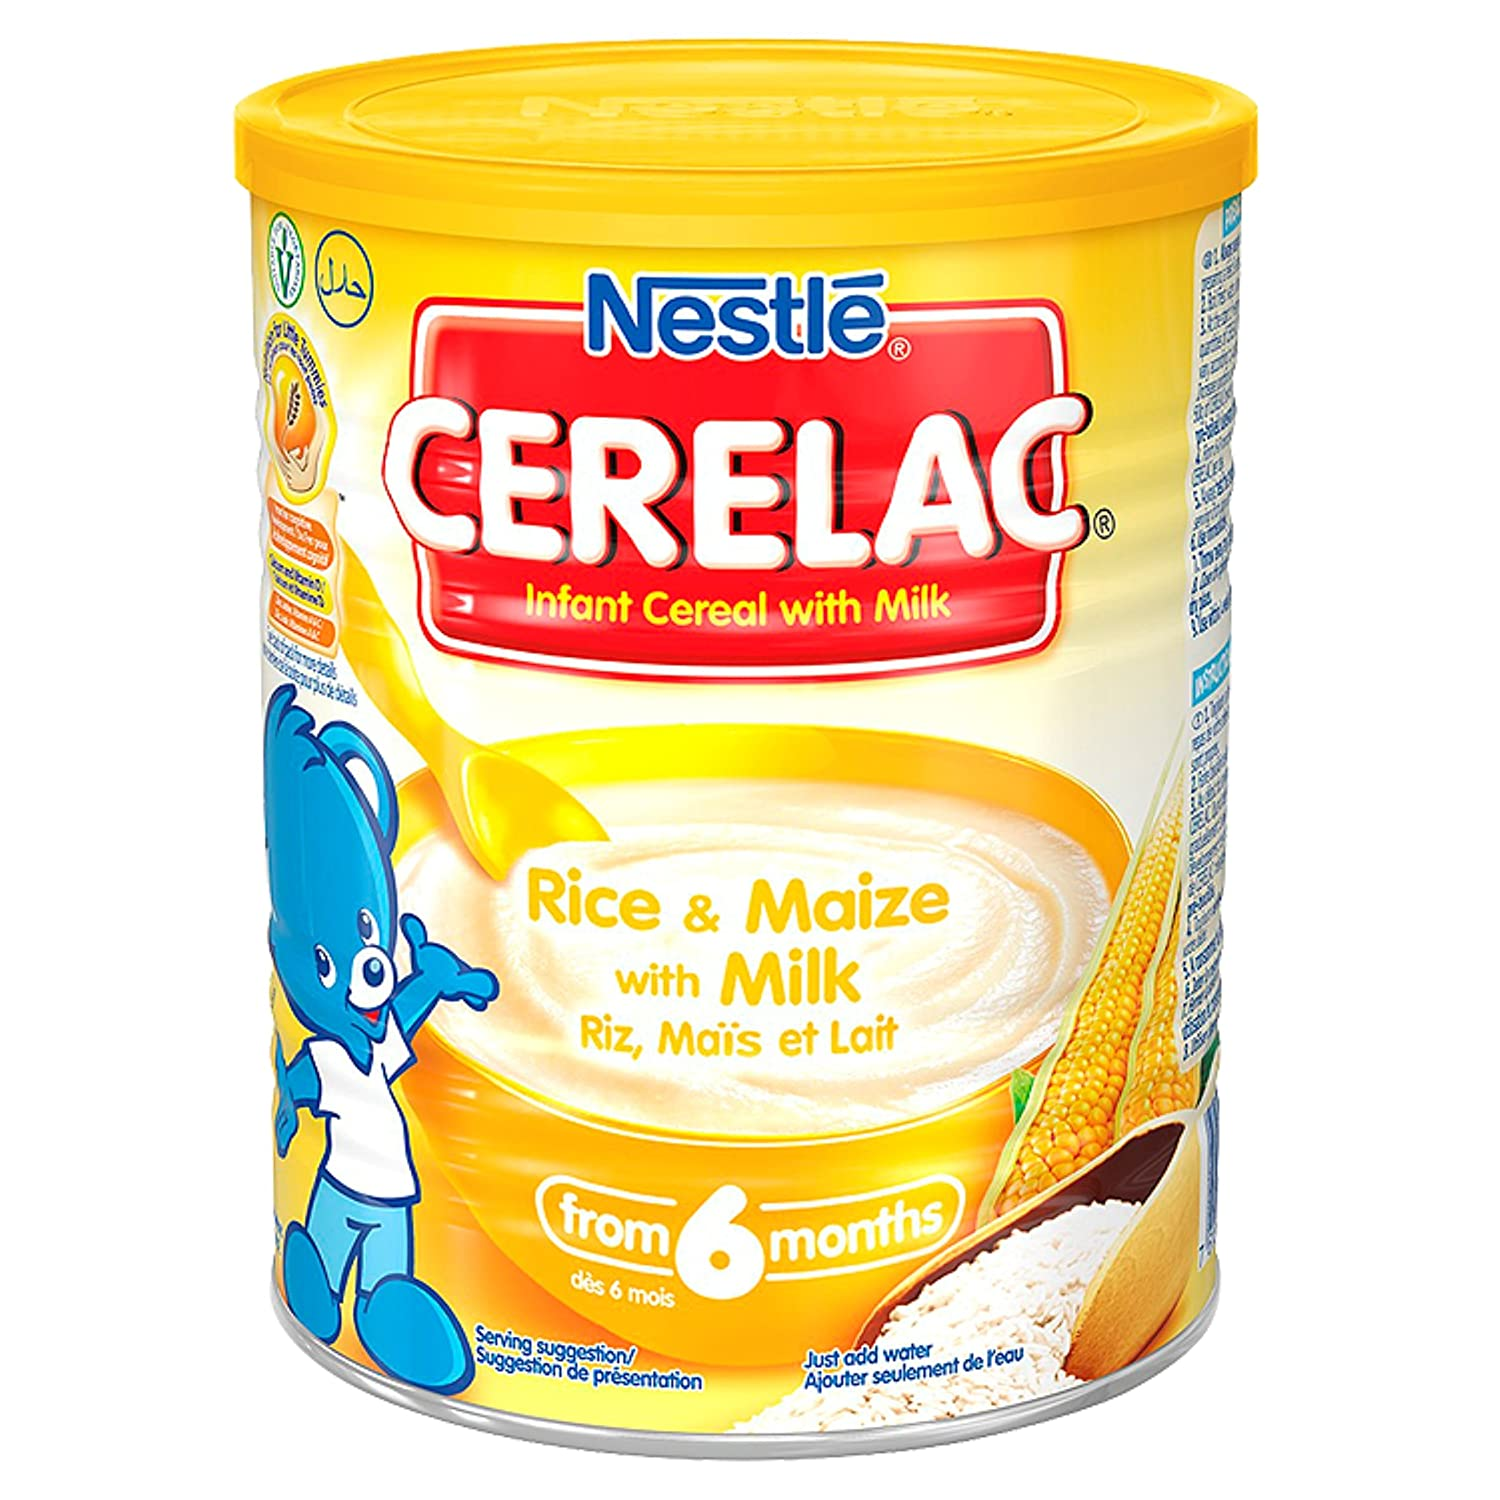 Nestle Cerelac Rice+maize With Milk, 14-Ounce Cans (Pack of 4) C15